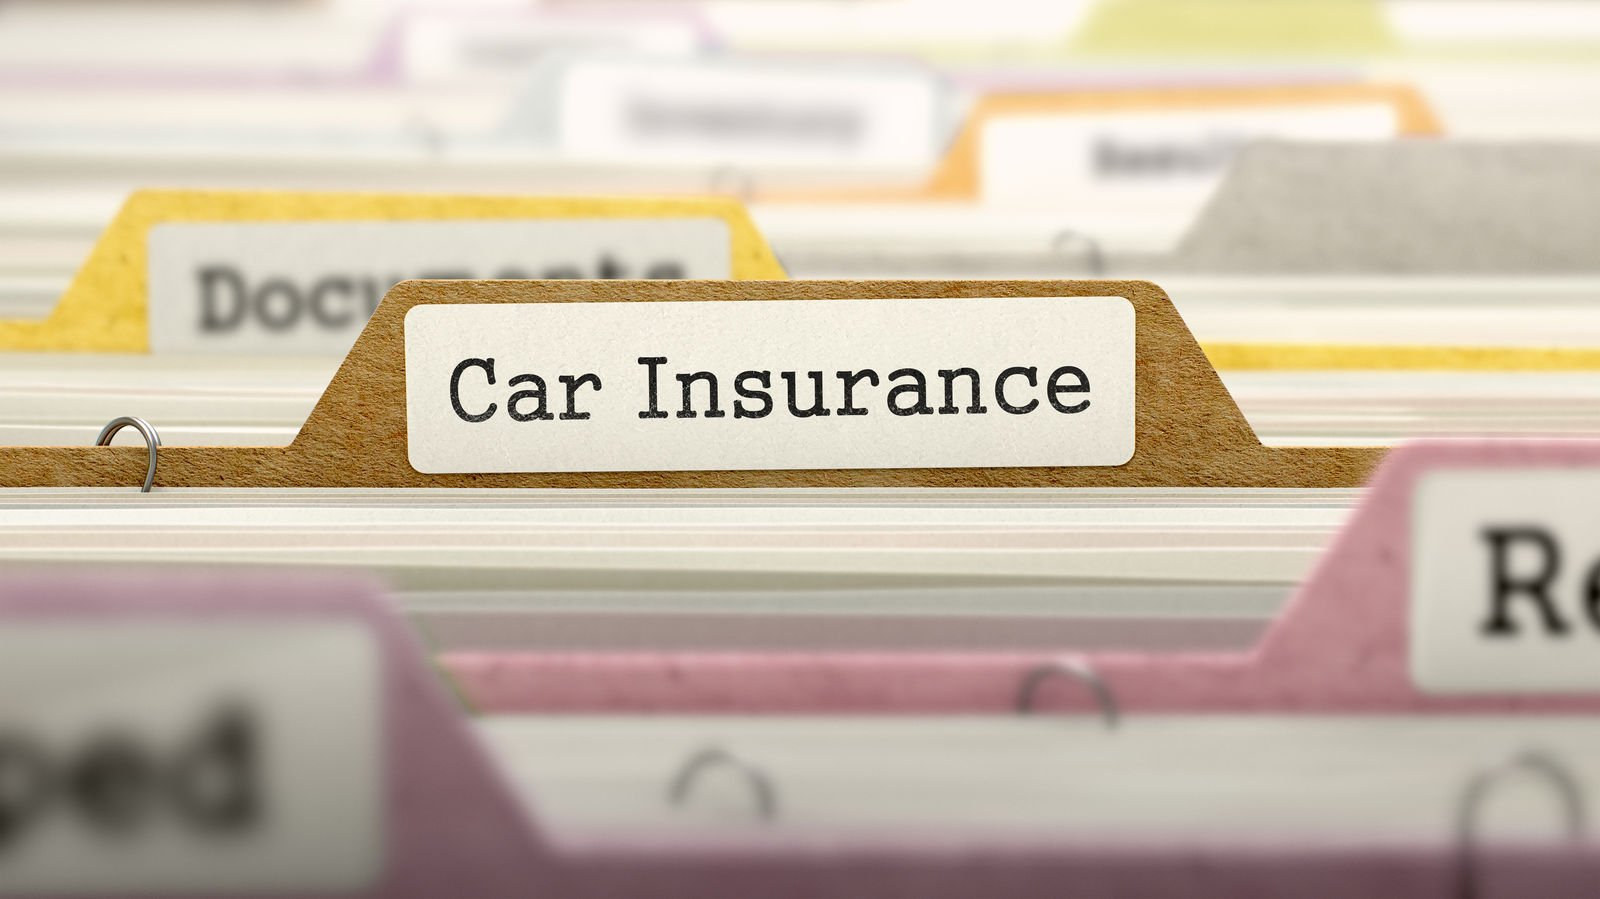 Third Party Property Car Insurance Comparison